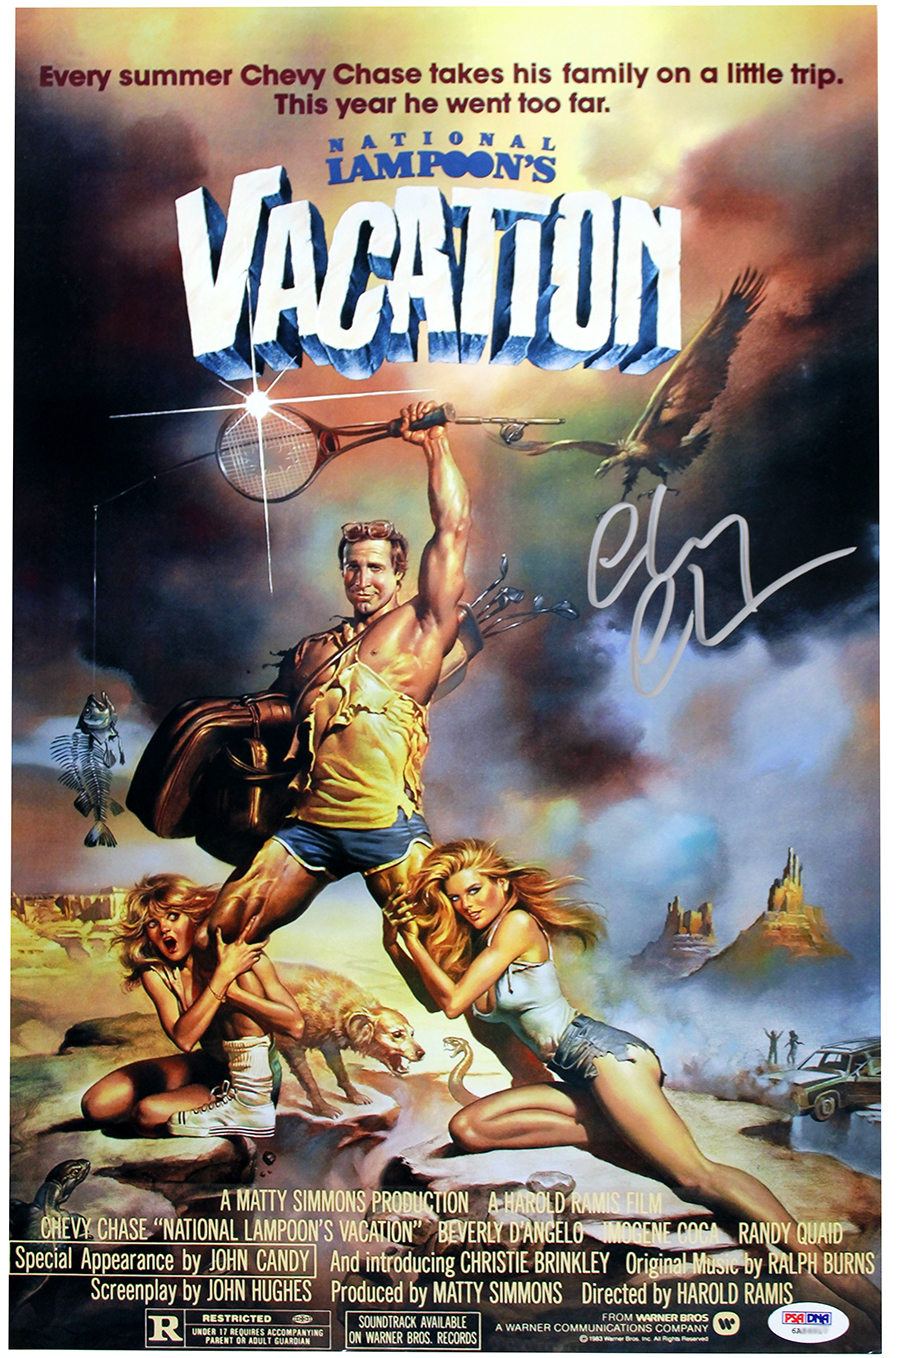 chevy chase autographed vacation 11x17 movie poster